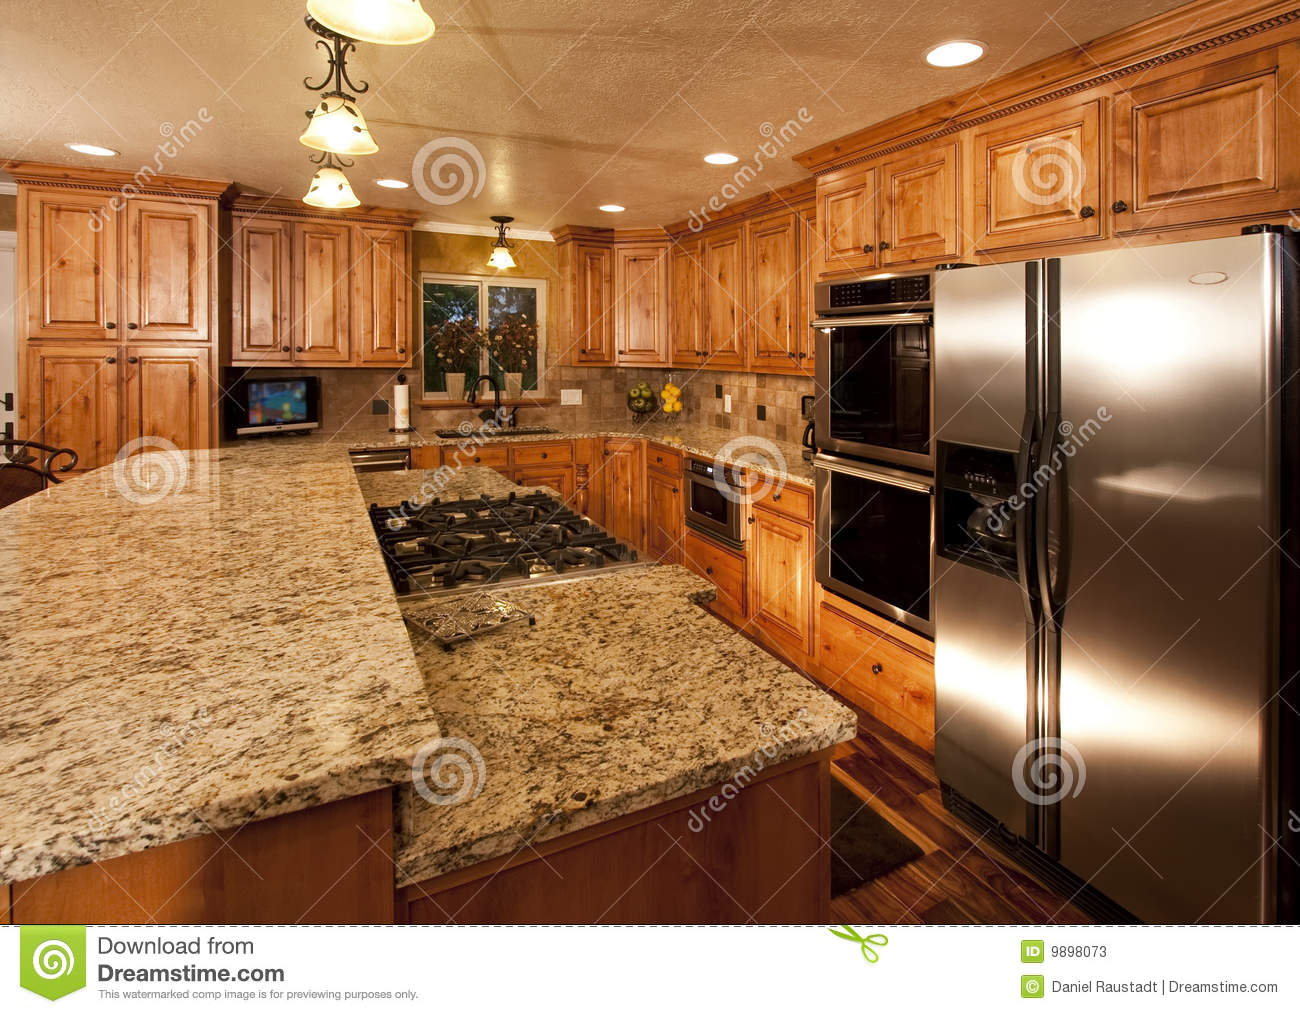 New Kitchen Island Stock Photos - Image: 9898073